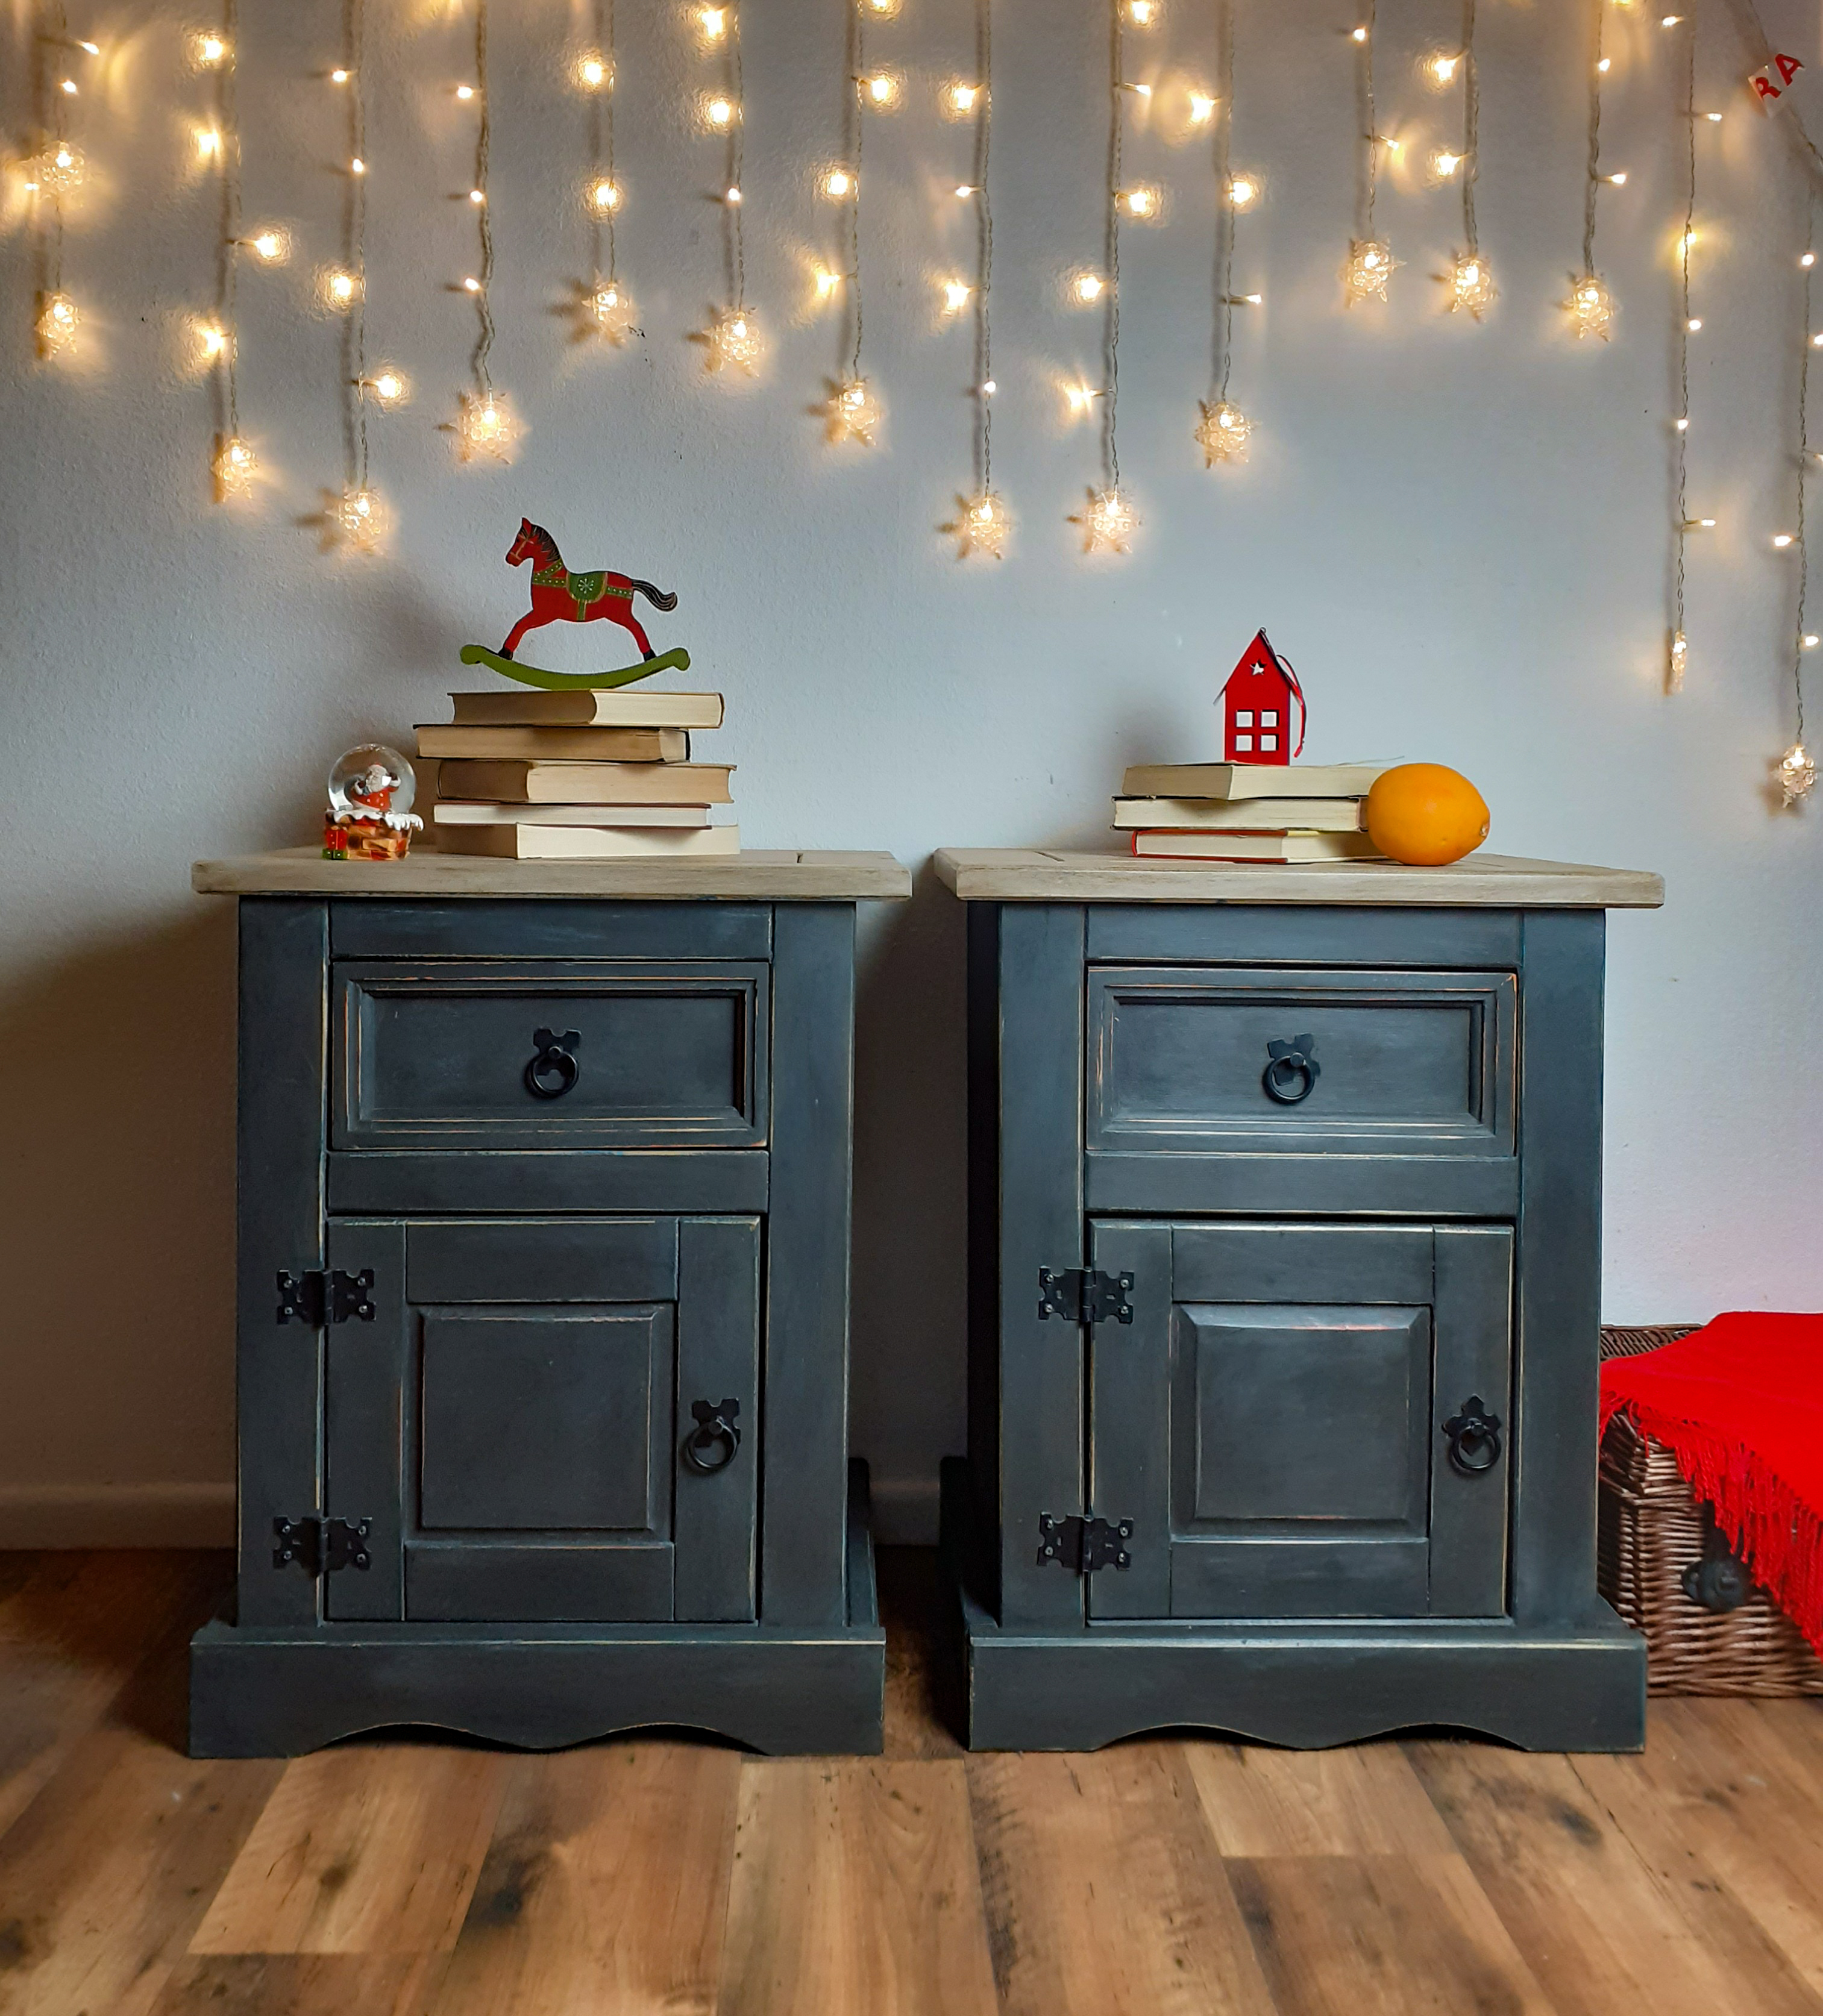 Grey Bedside Cabinets Nightstands Set Of Cabinets Country Farmhouse Furniture Mexican Corona Vinterior